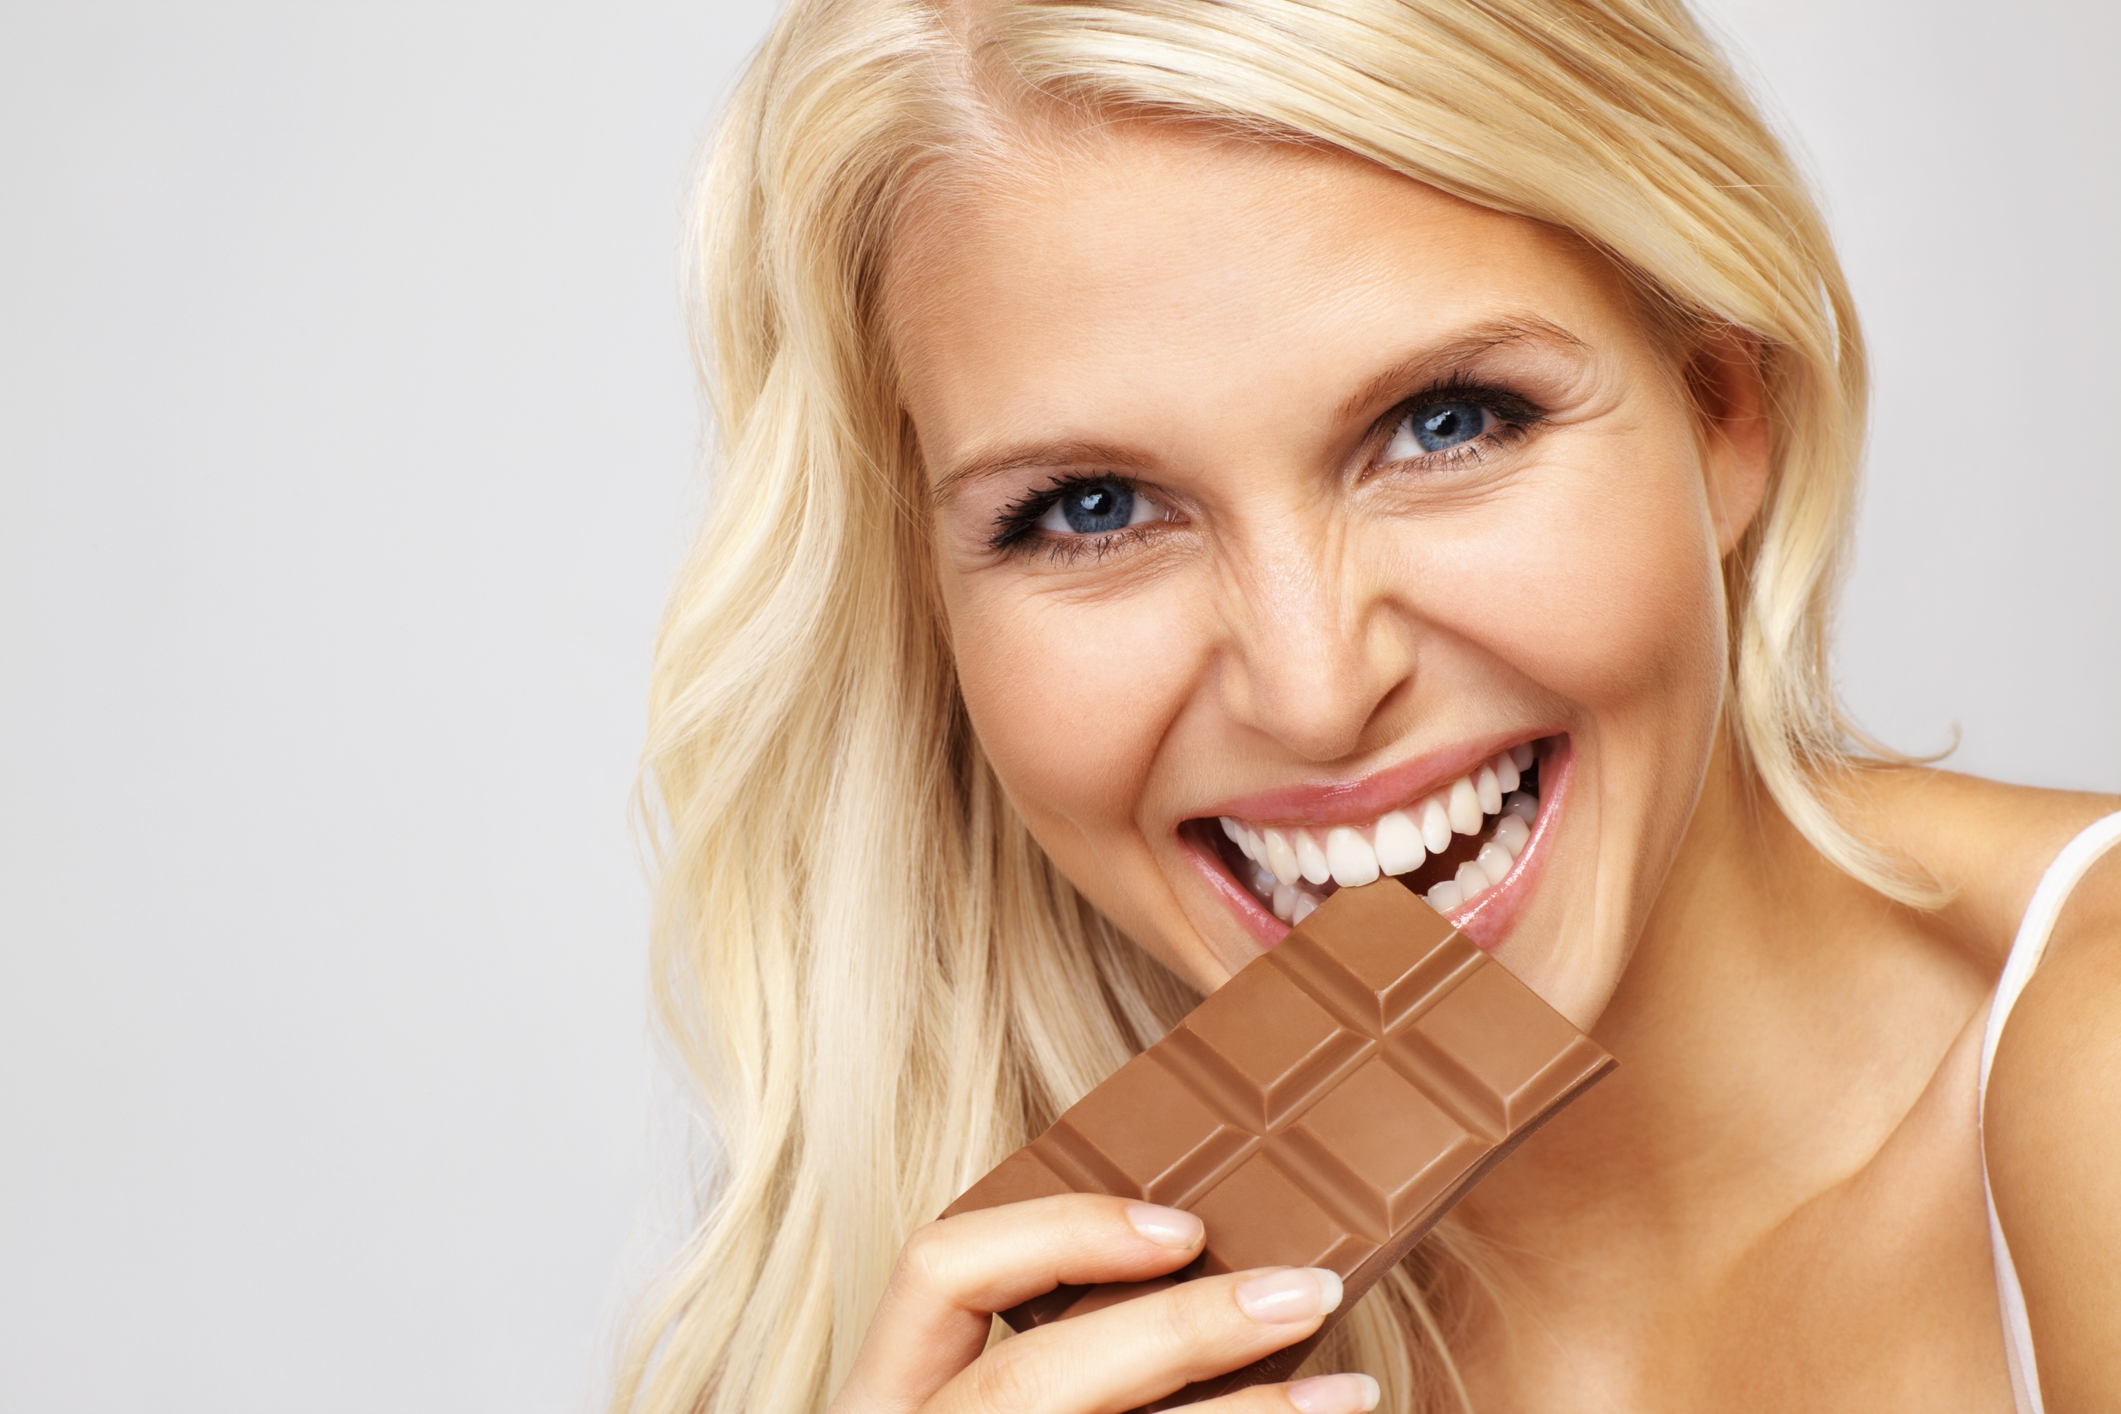 When eating milk chocolate can help curb your appetite